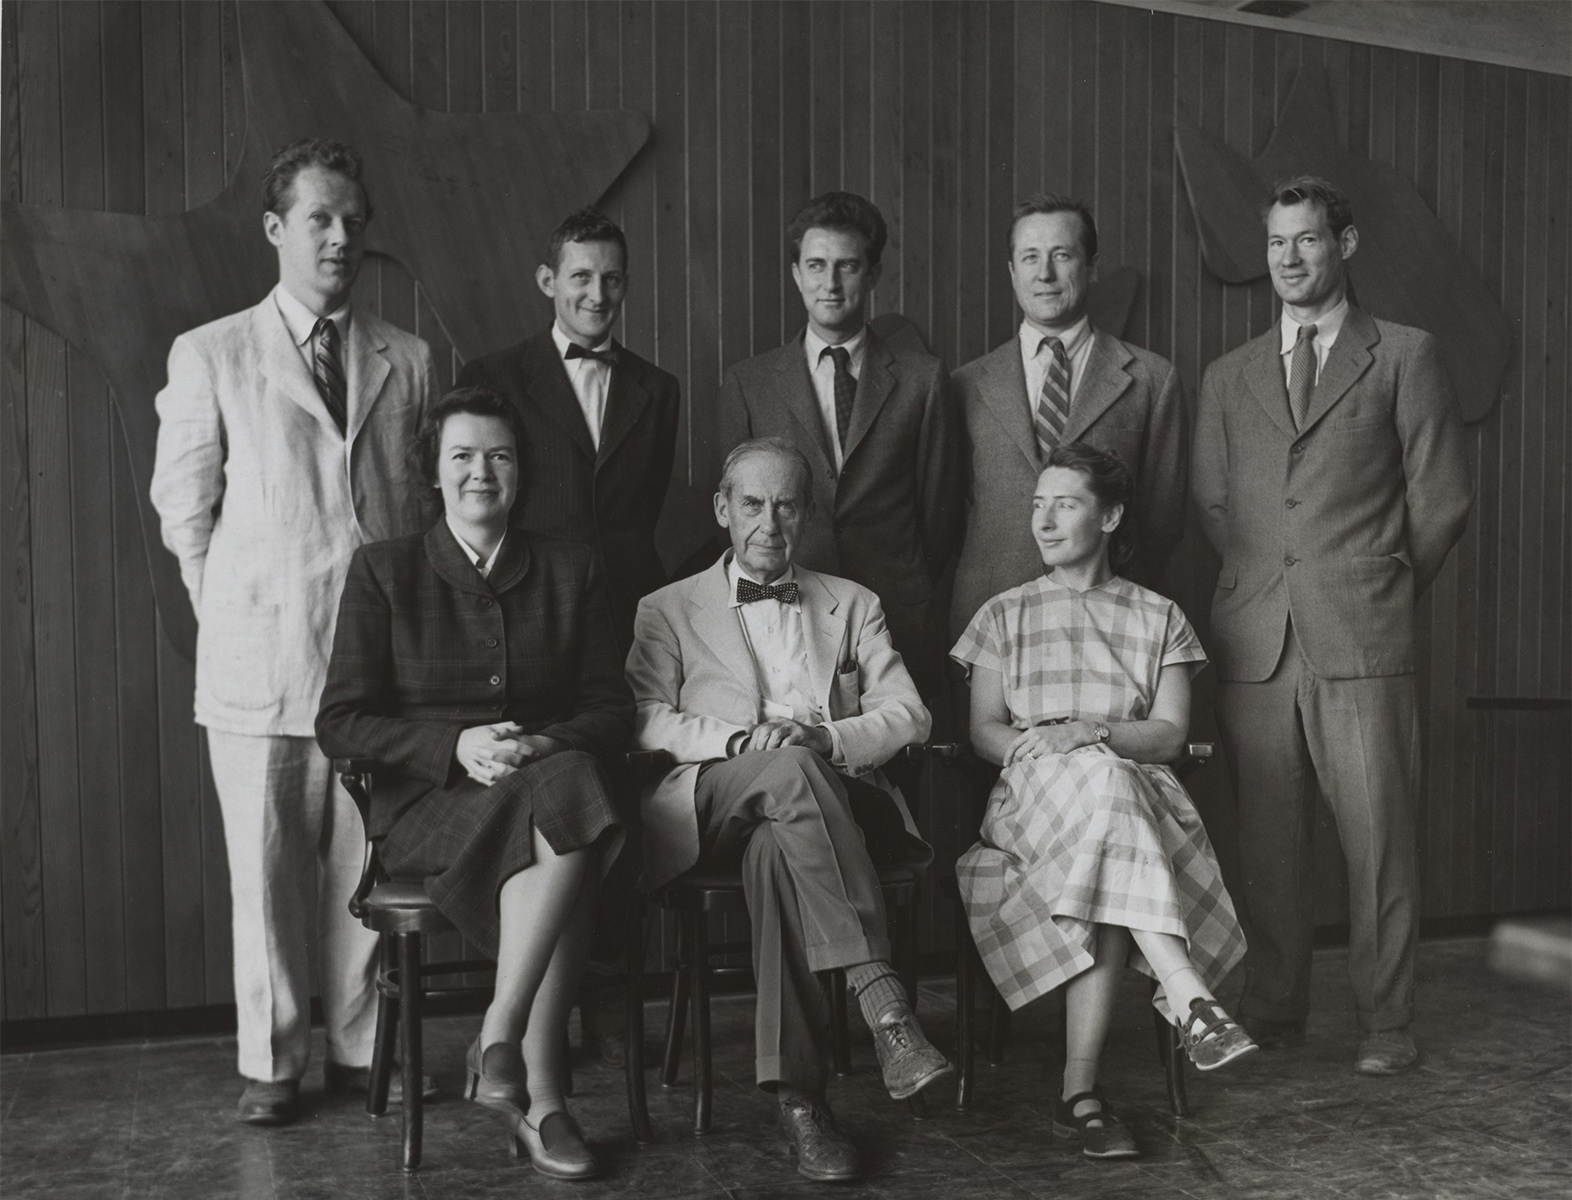 Members of The Architects Collaborative in front of Constellations, 1950. Gelatin silver print. Harvard Law School Buildings Collection, Special Collections, Harvard Law School Library, Harvard University. Photo: Walter R. Fleischer. Sitting left to right: Jean B. Fletcher, Walter Gropius, Sarah Harkness. Standing left to right: Benjamin Thompson, Norman C. Fletcher, Robert S. McMillan, Louis A. McMillen, John C. Harkness.